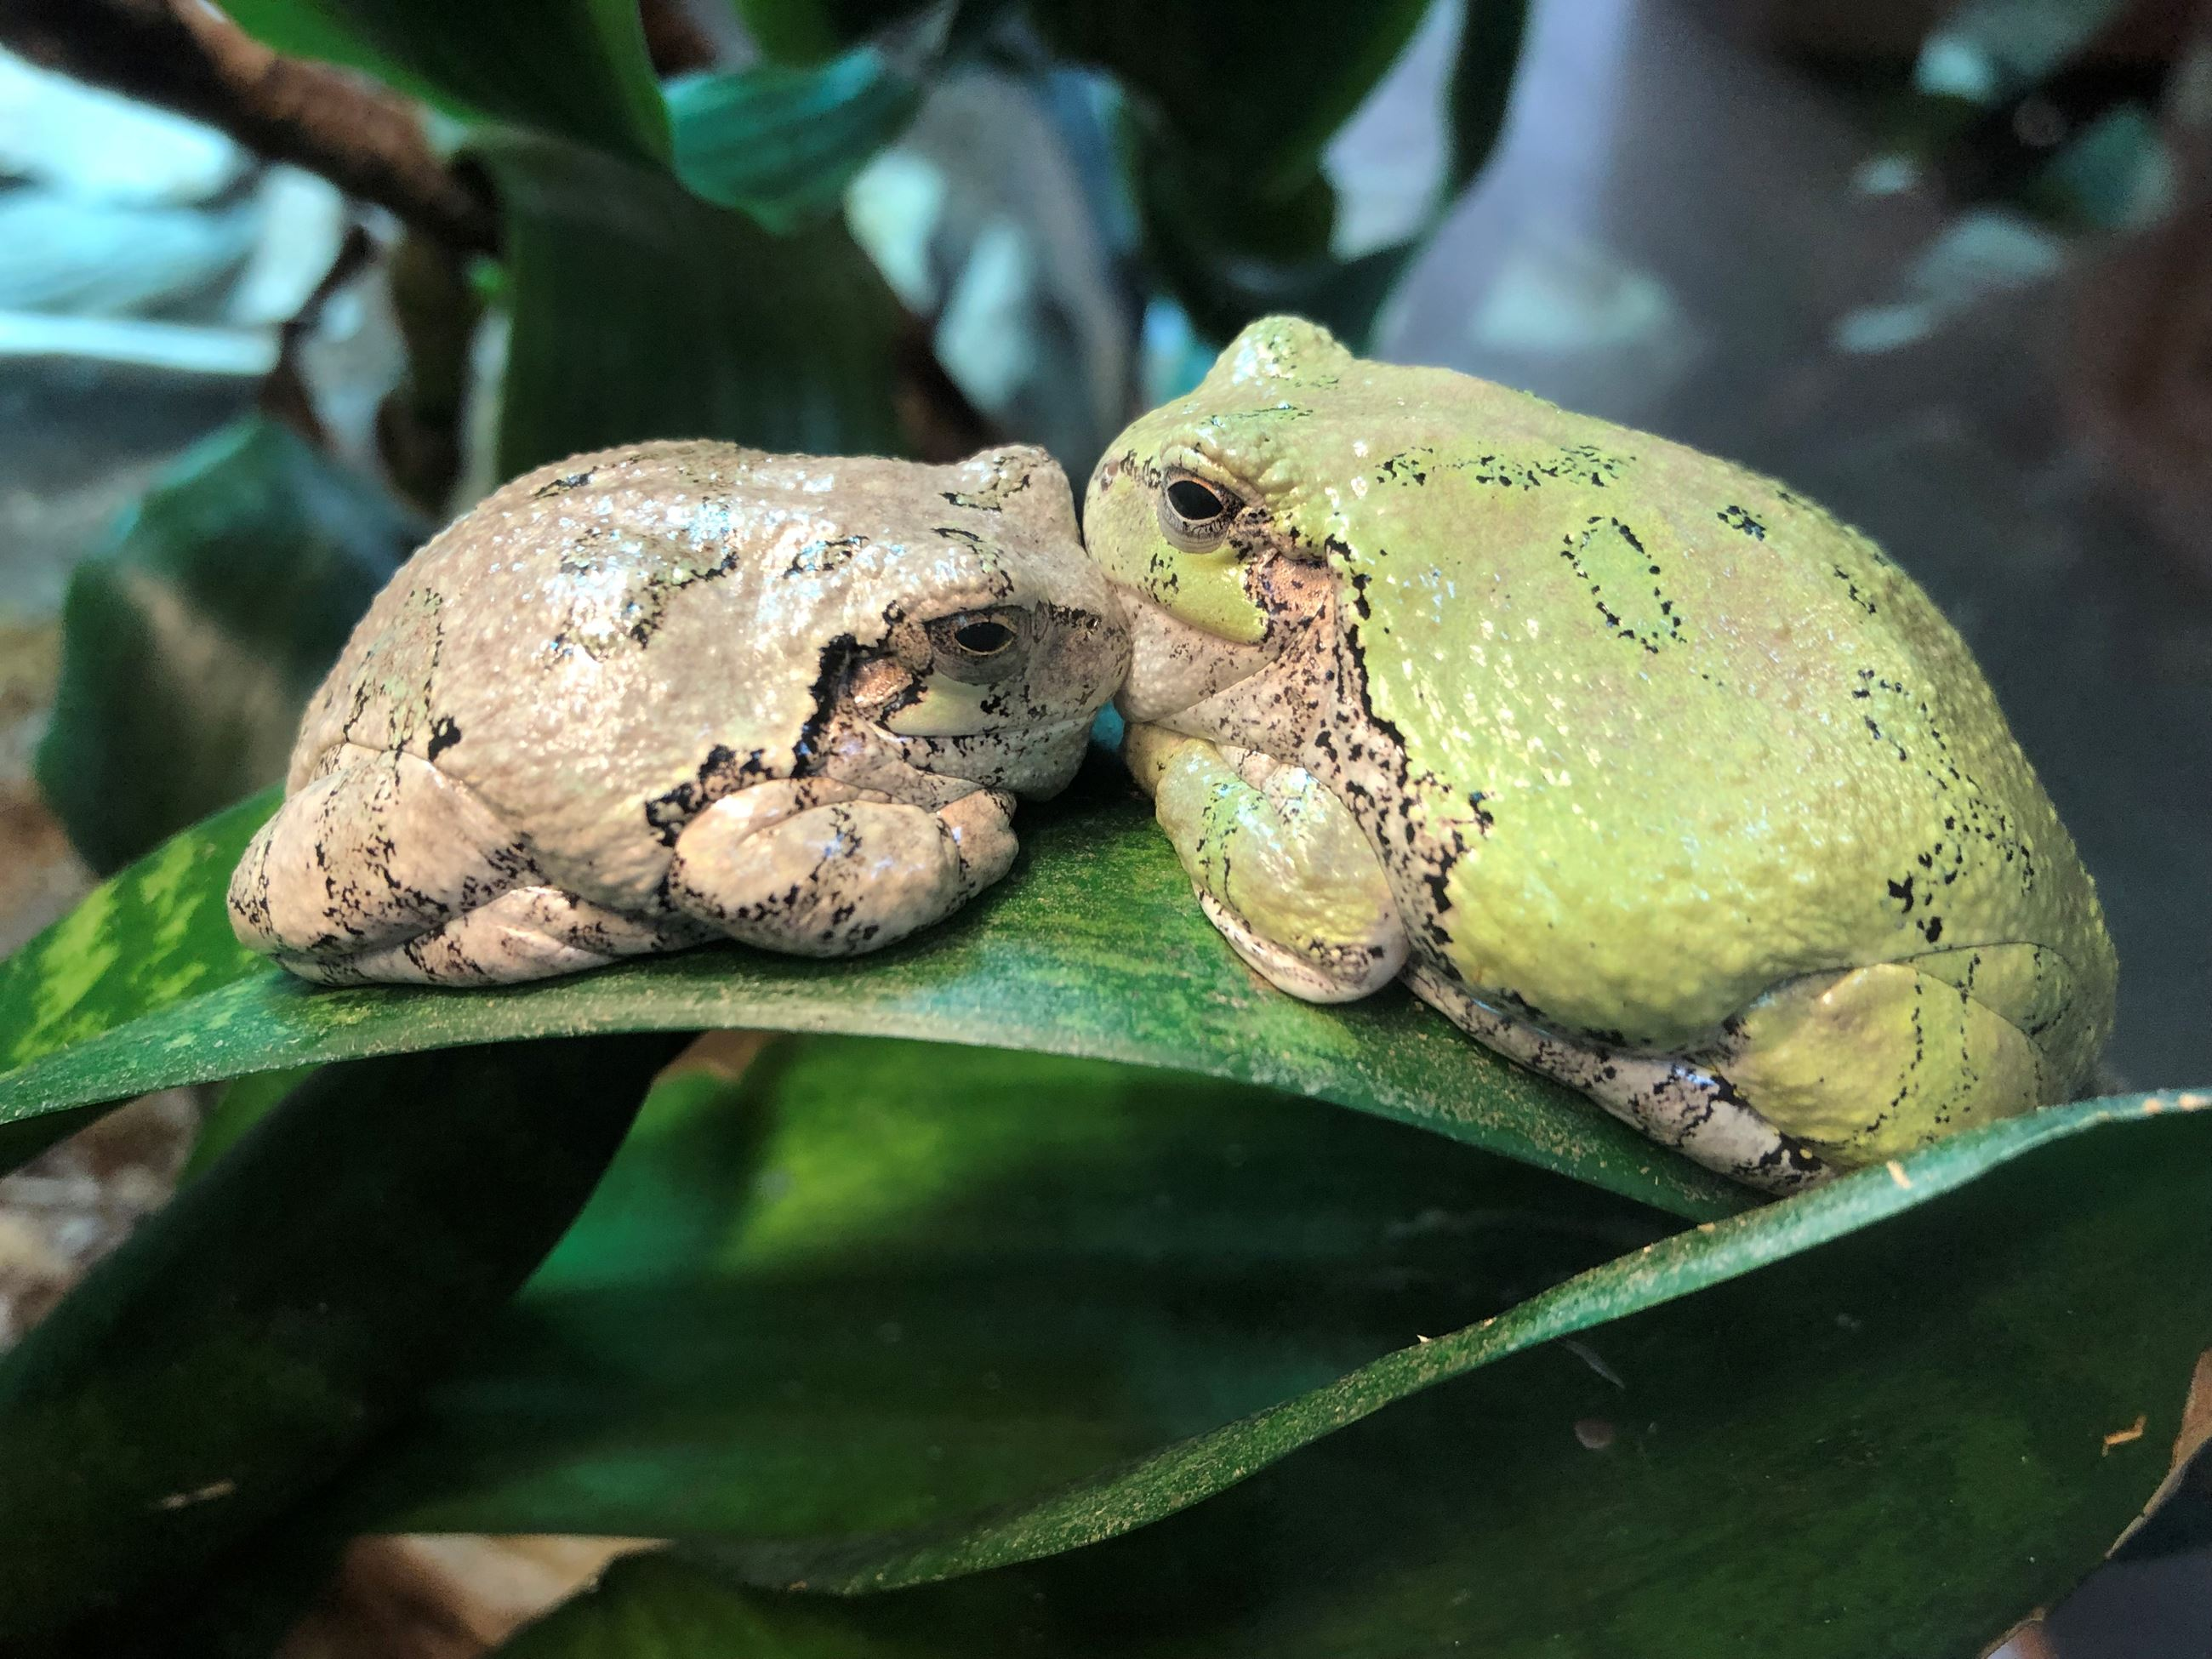 Two gray tree frogs sitting on a leaf. They are face to face and look like they are kissing.